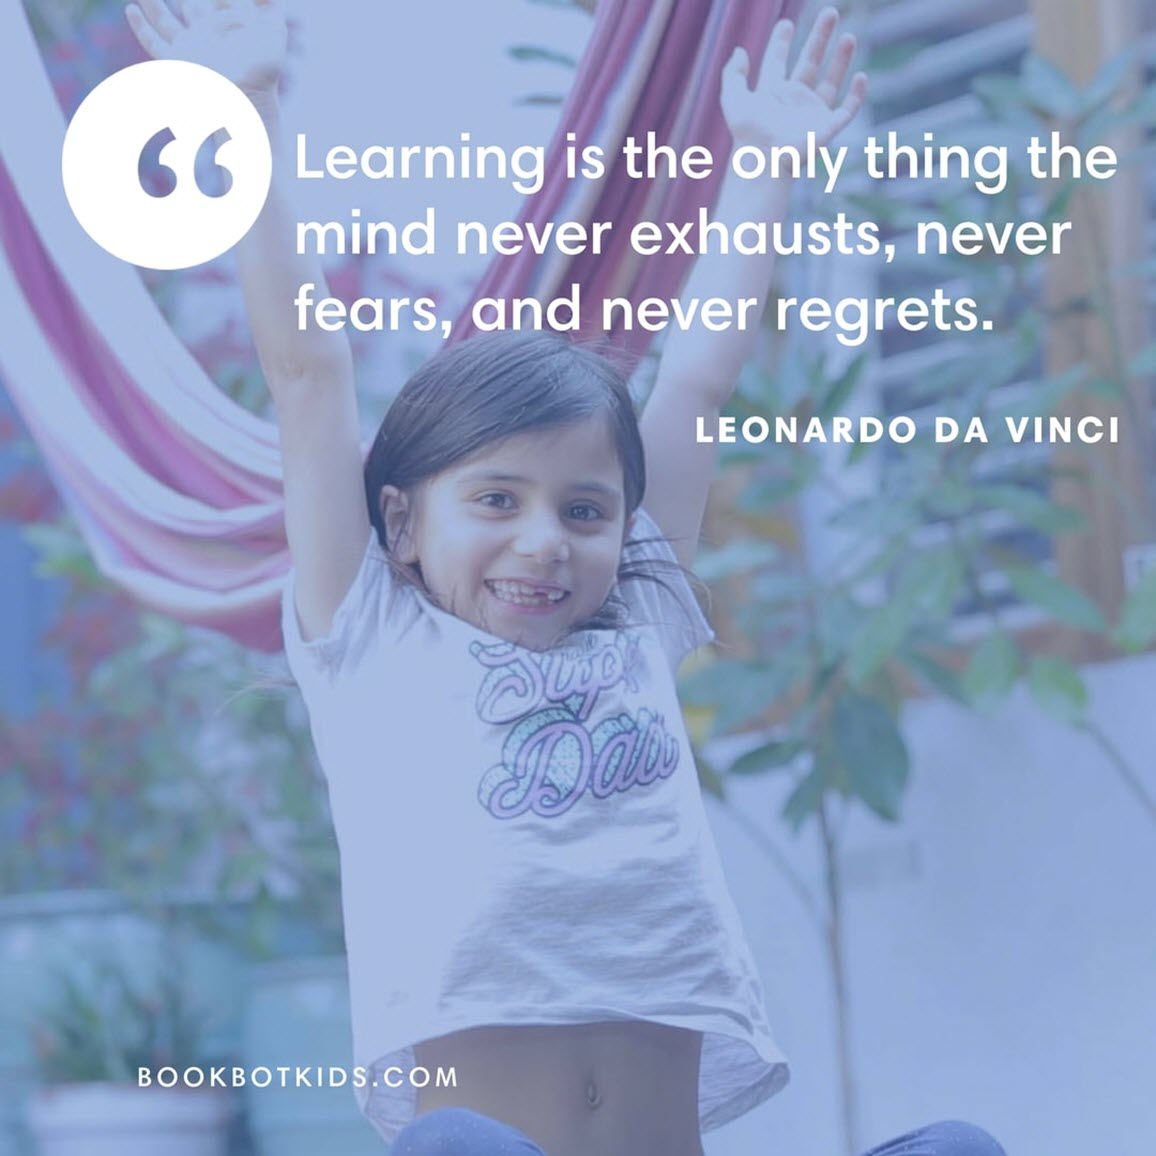 Learning is the only thing the mind never exhausts, never fears, and never regrets. – Leonardo da Vinci